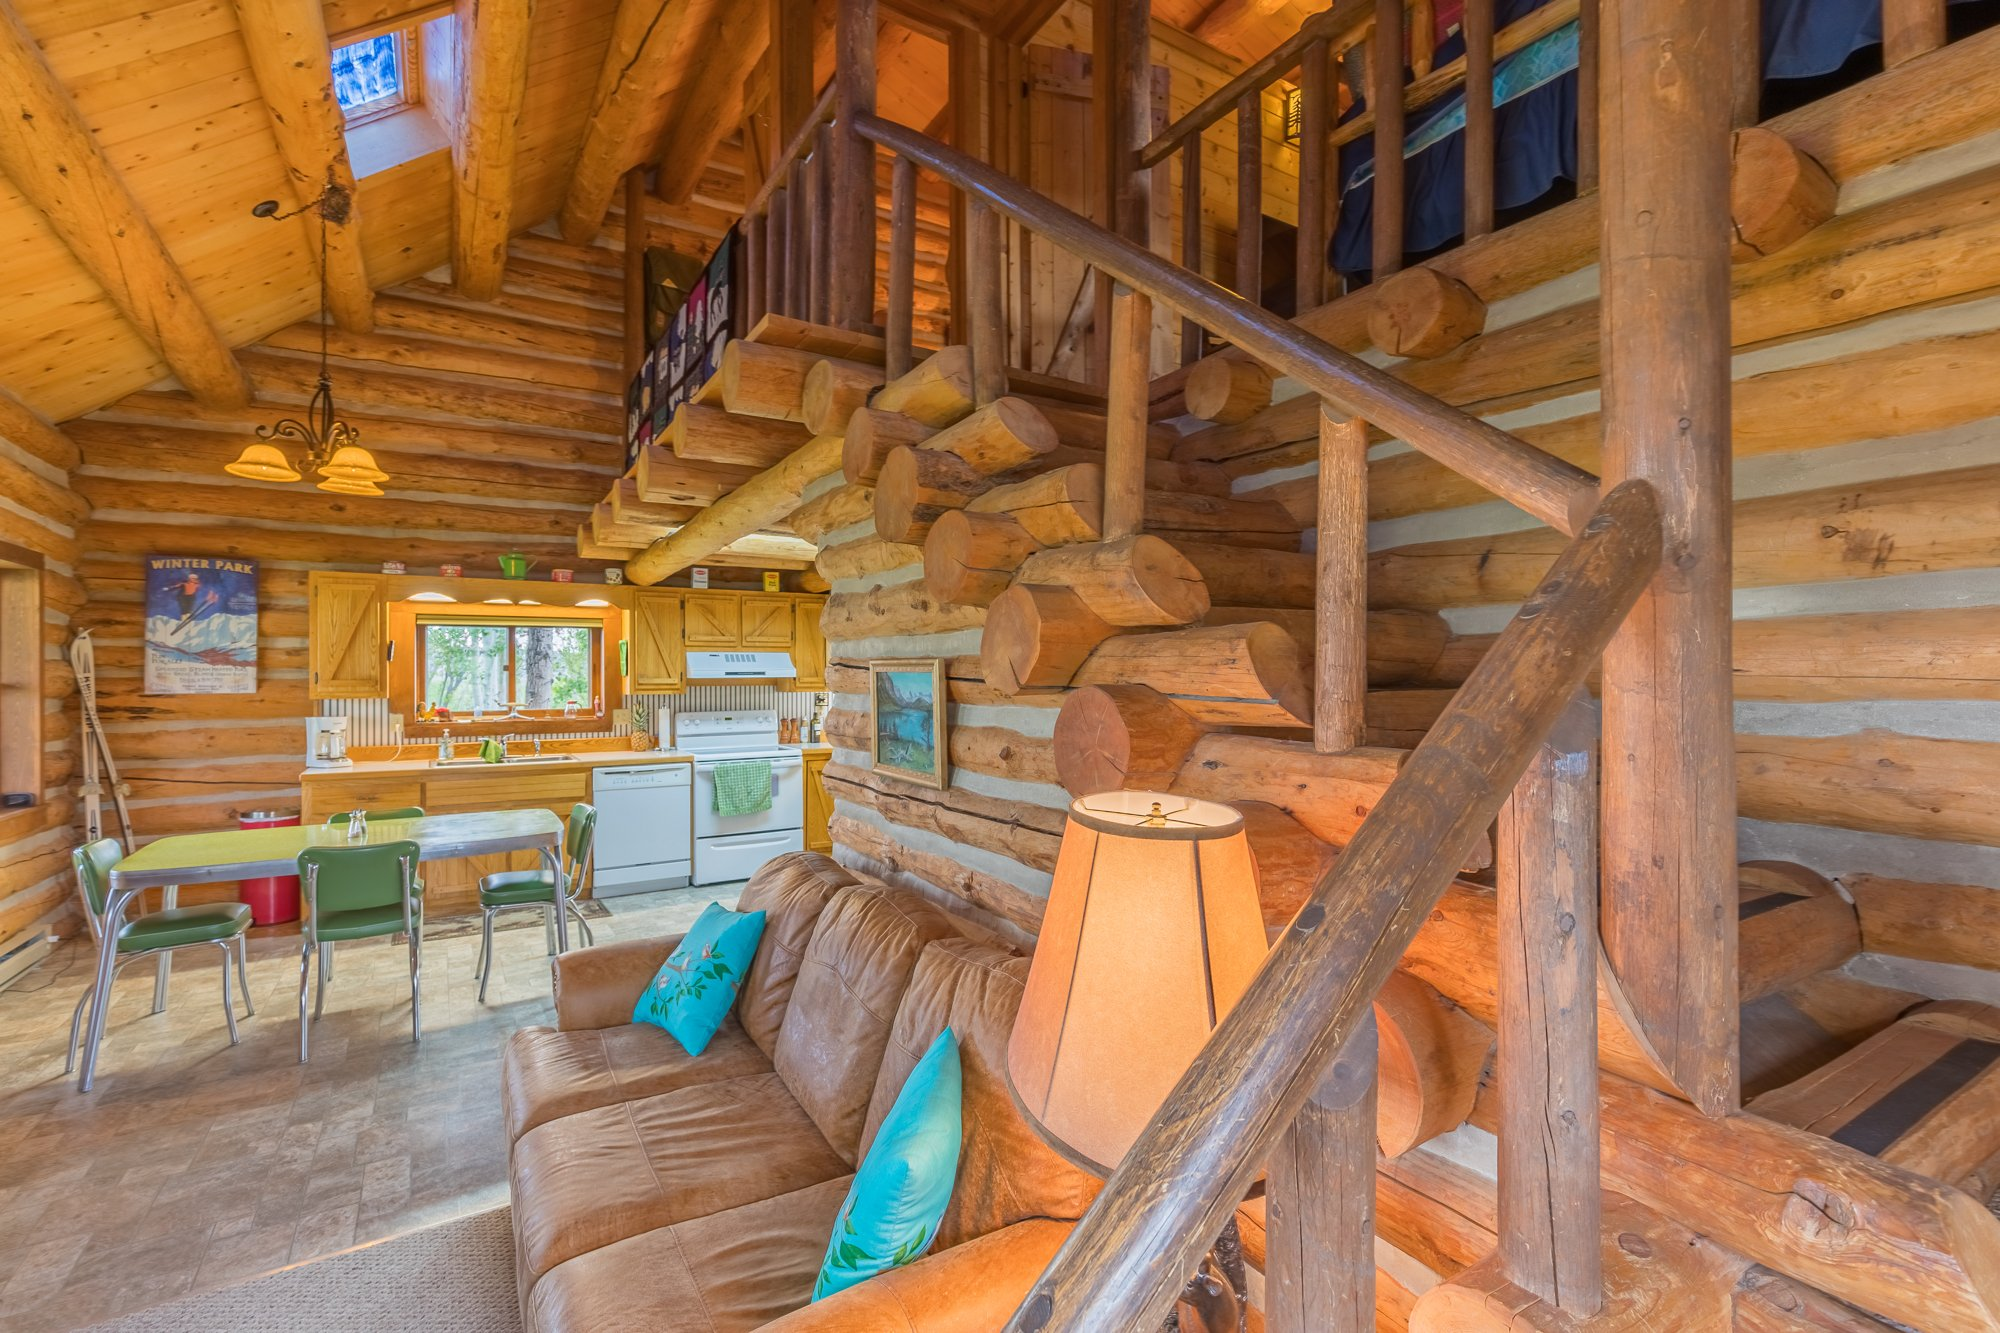 Downstairs - 21770 Uncompahgre Rd Montrose, CO 81403 - Atha Team Country Real Estate